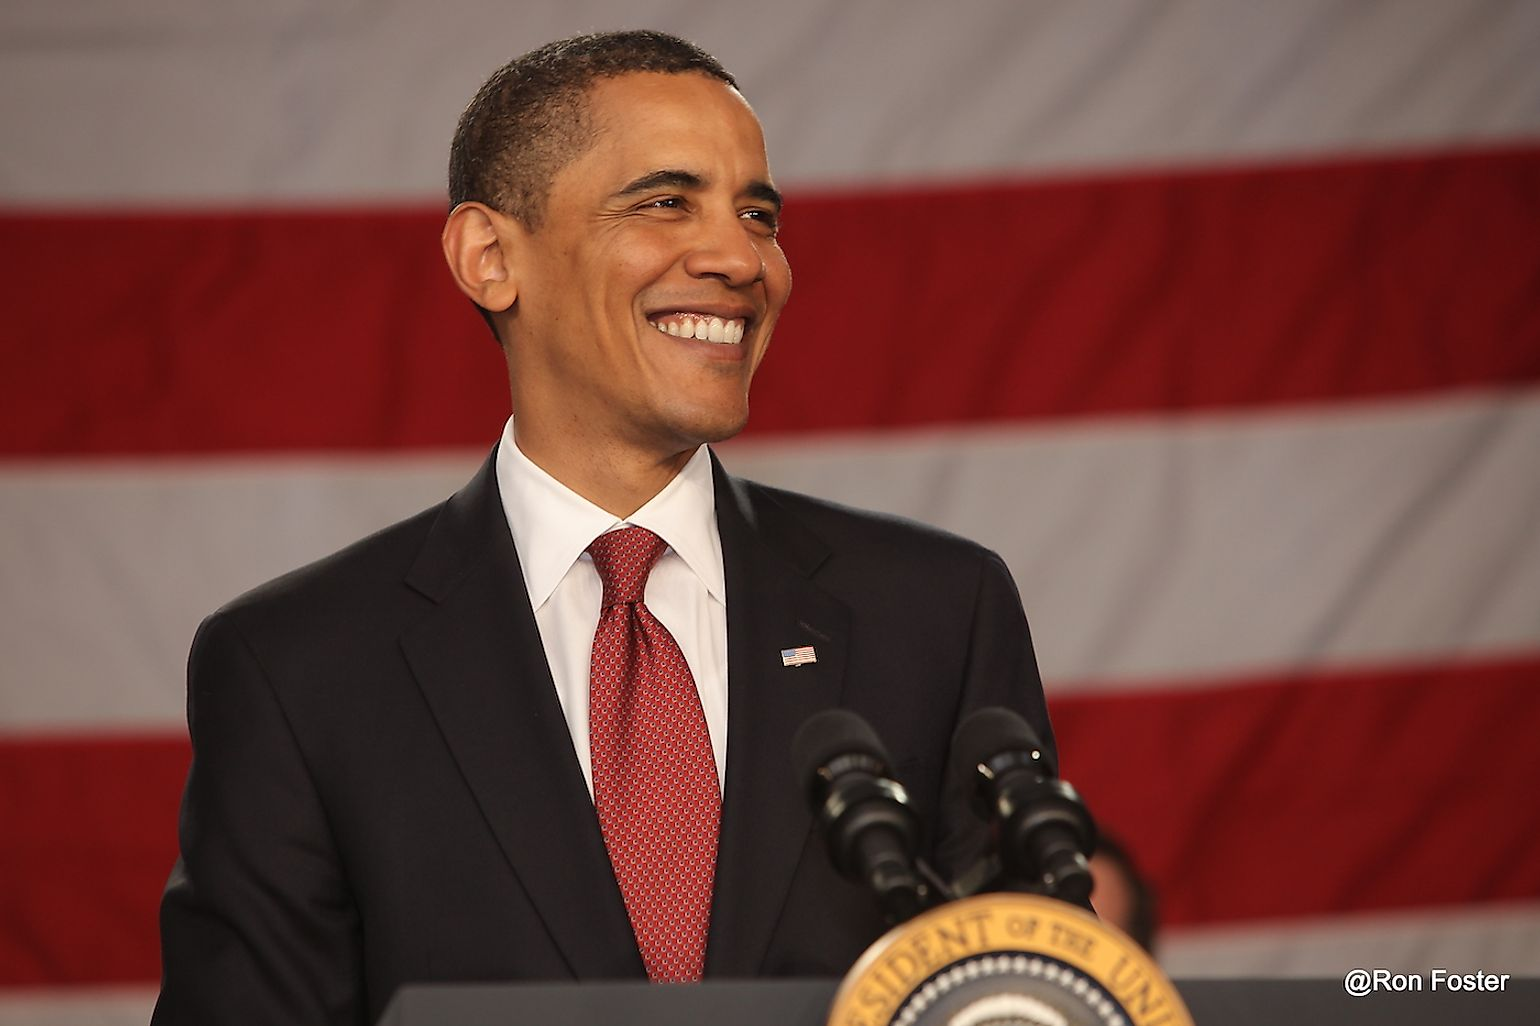 President Obama appeared in downtown Indianapolis, Indiana on May 17, 2009. Image credit: Ron Foster Sharif/Shutterstock.com